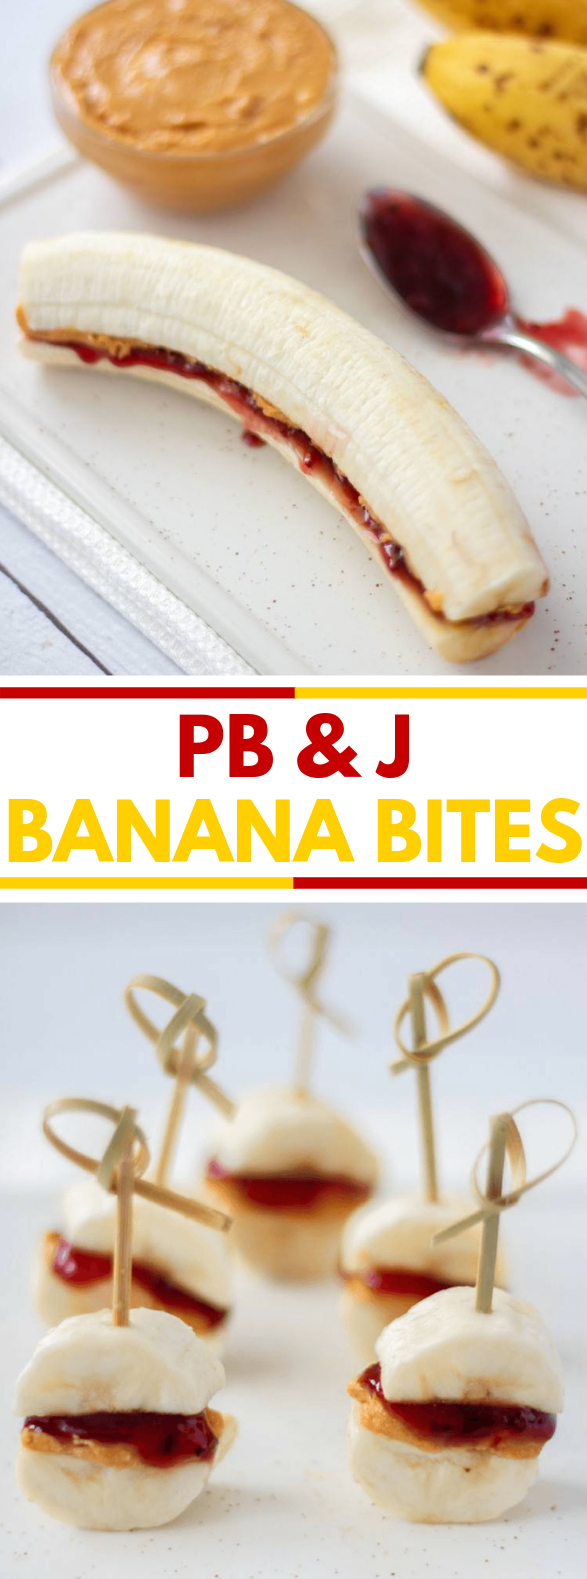 Peanut Butter & Jam Banana Bites #healthydiet #cleaneating